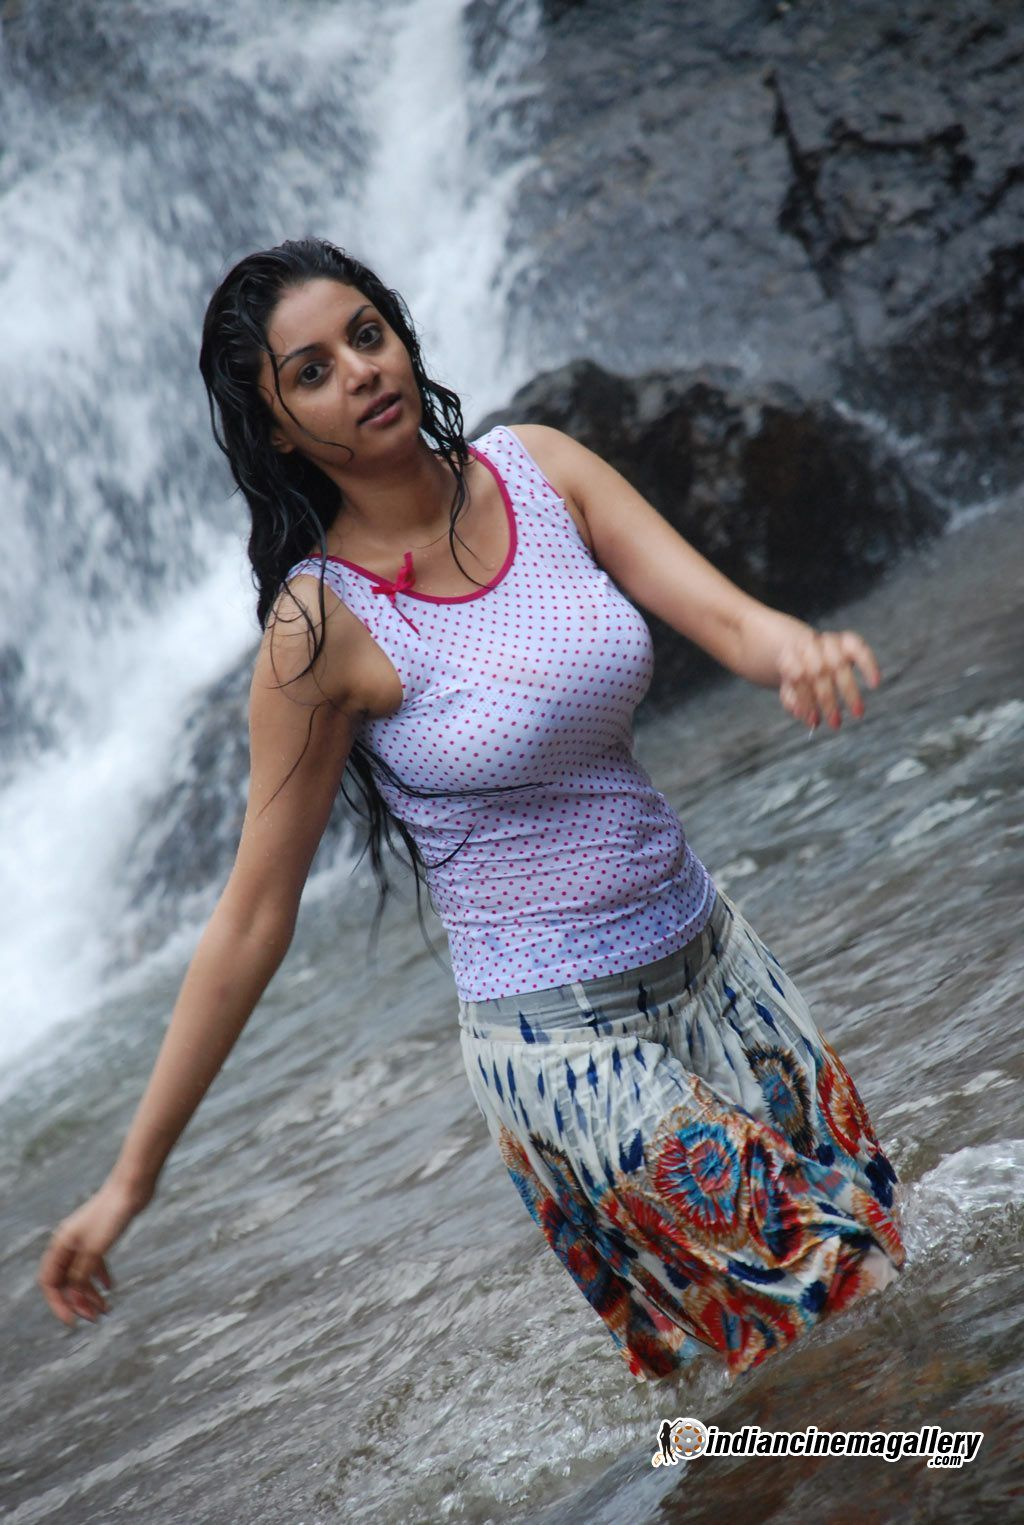 Pin by I INSTM on India | Hot actresses, Sexy, Tamil movies